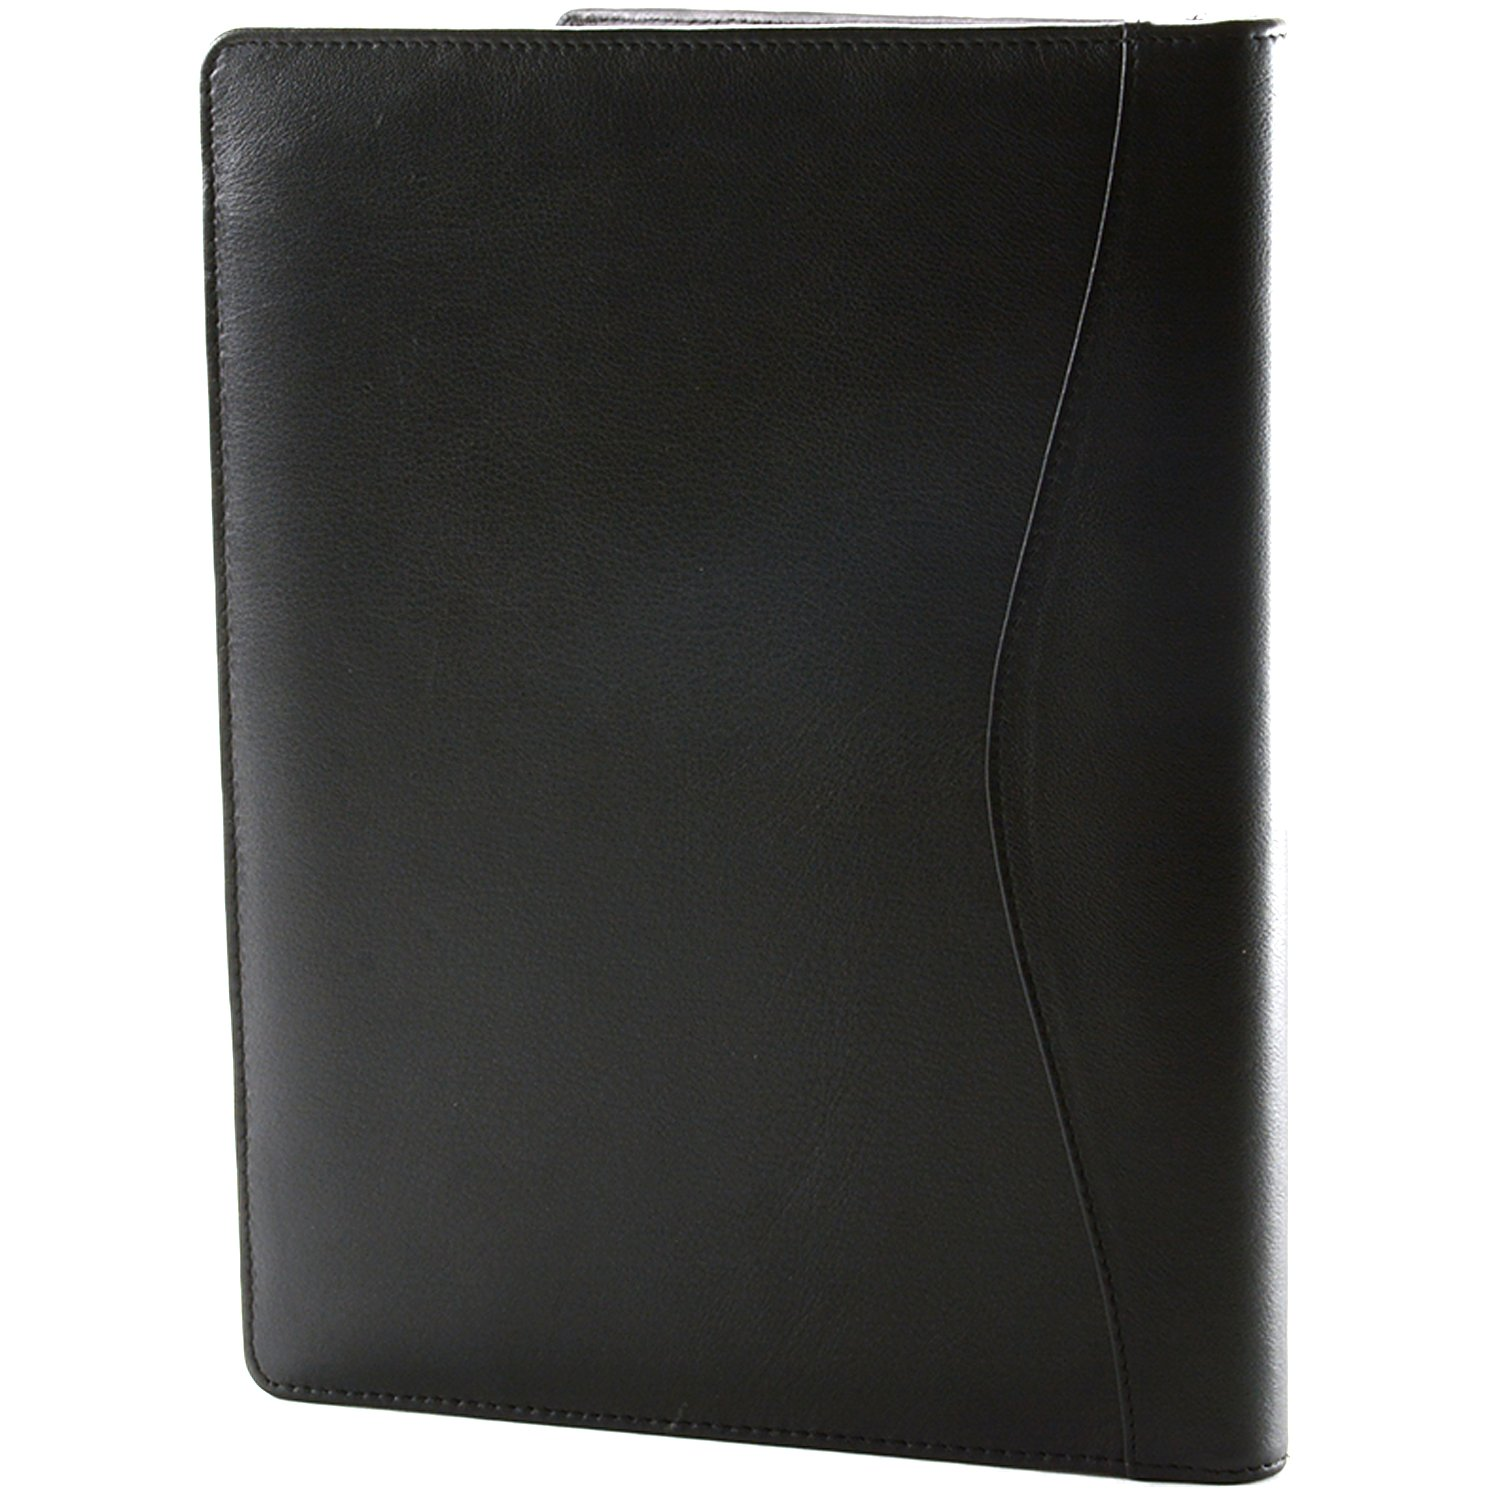 Leather portfolio cases business portfolios folders embossed with - Amazon Com Alpine Swiss Leather Portfolio Writing Pad Presentation Folder Business Case Comes In A Gift Bag Note Pad Can Be Inserted Adjusted Both For